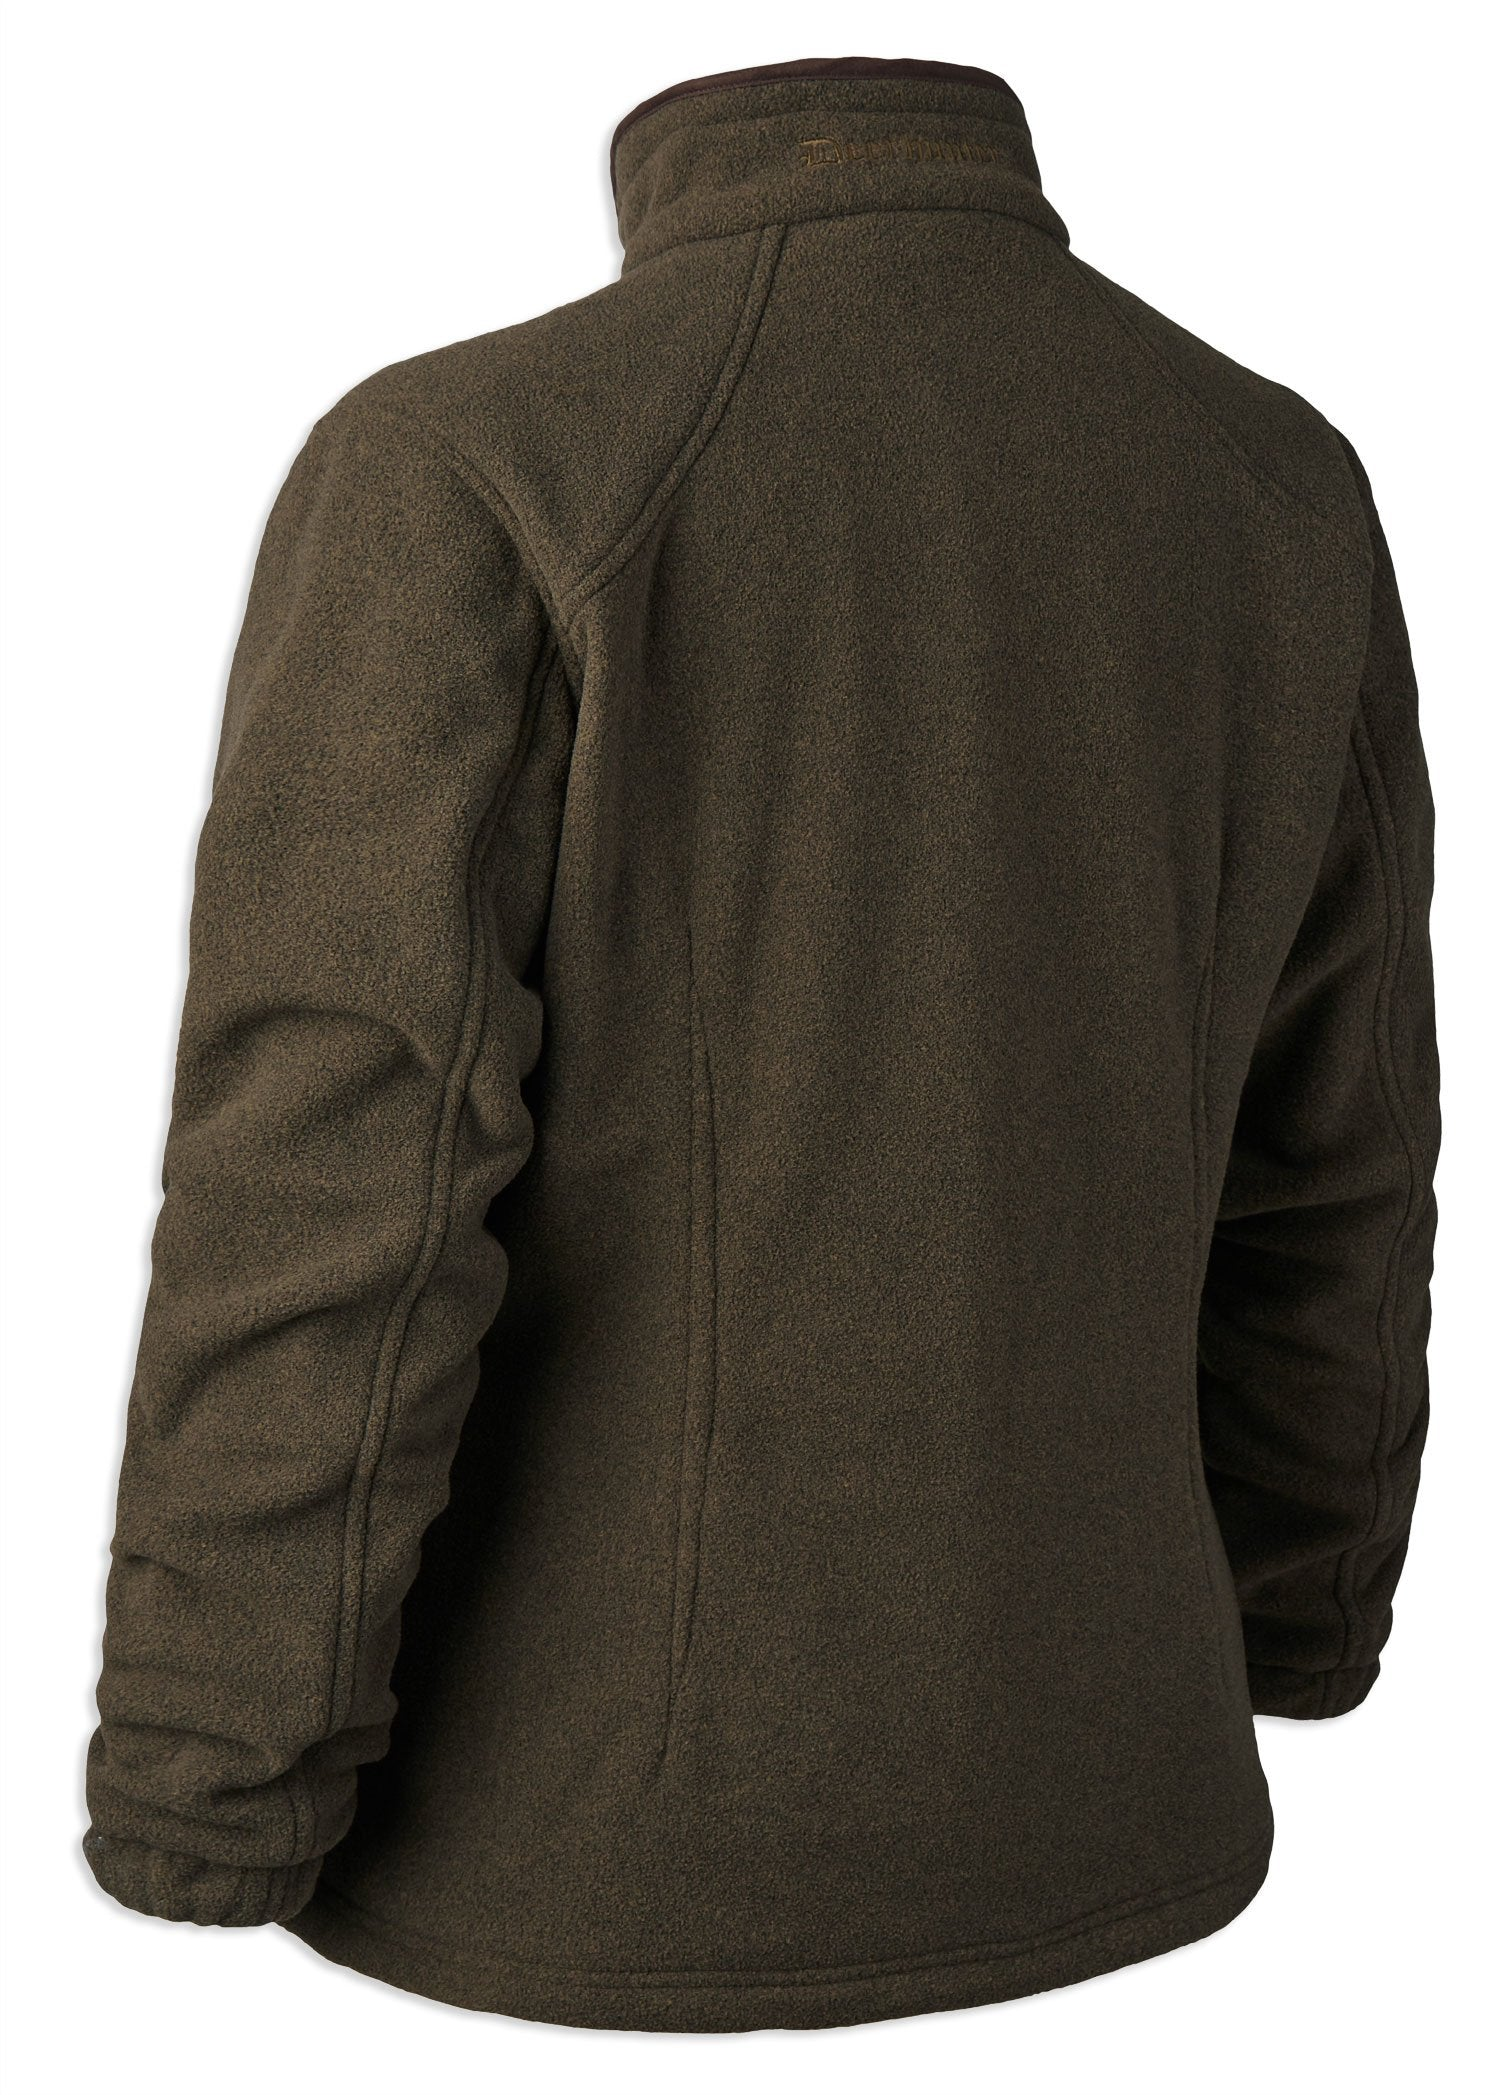 Back View Green Deerhunter Lady Josephine Fleece with Stormliner